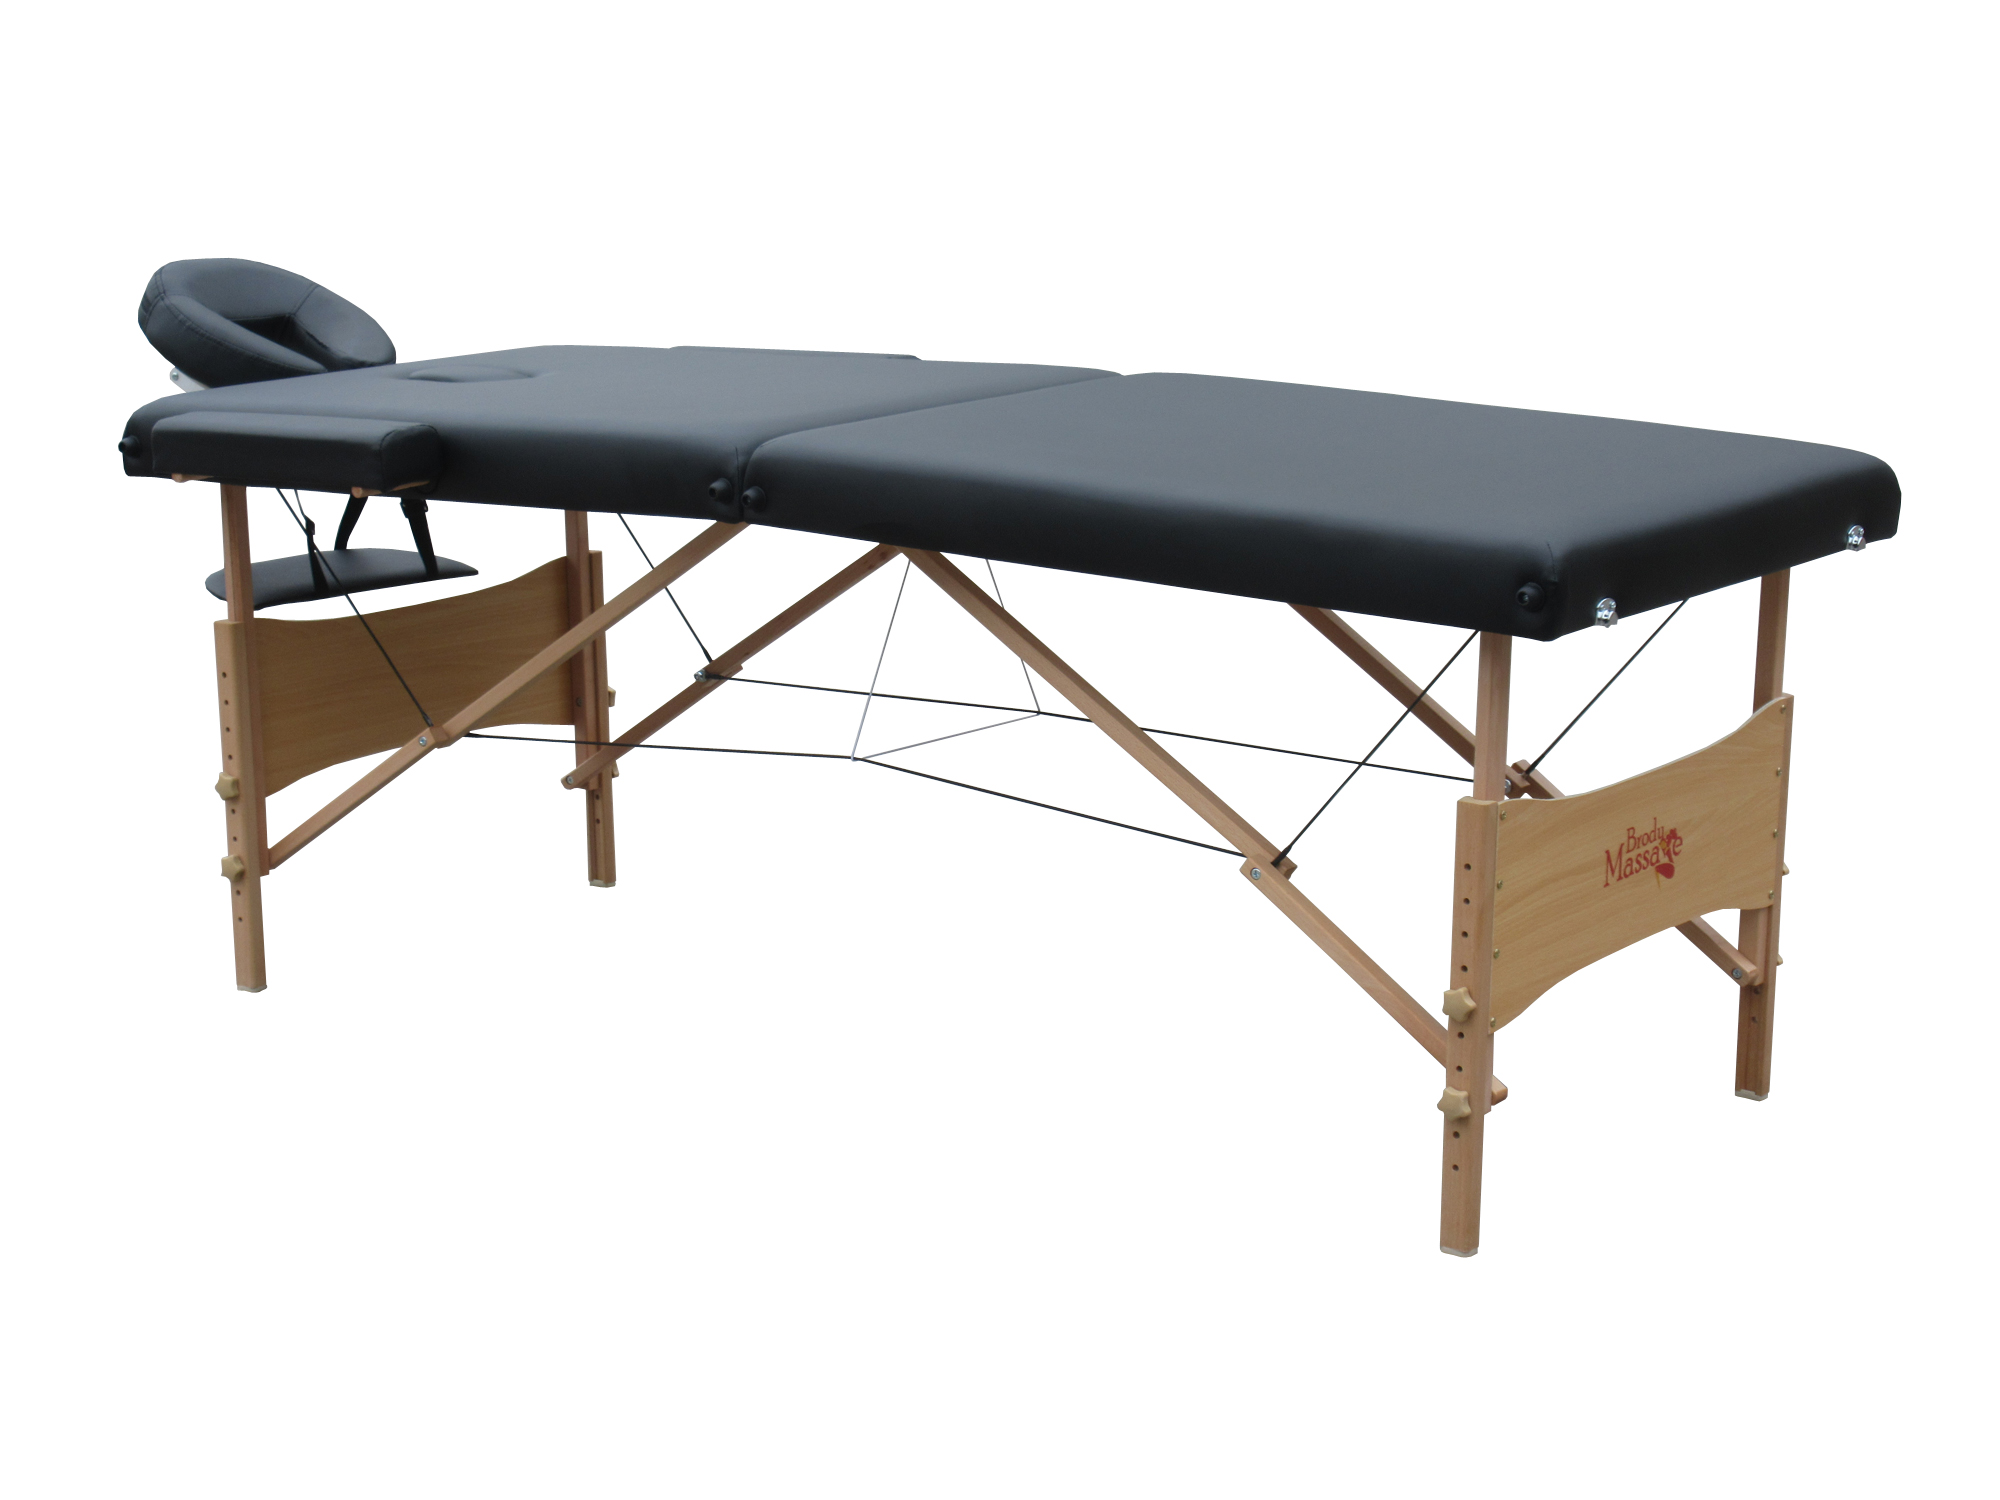 Portable Massage Table with Carrying Case (10 inch)